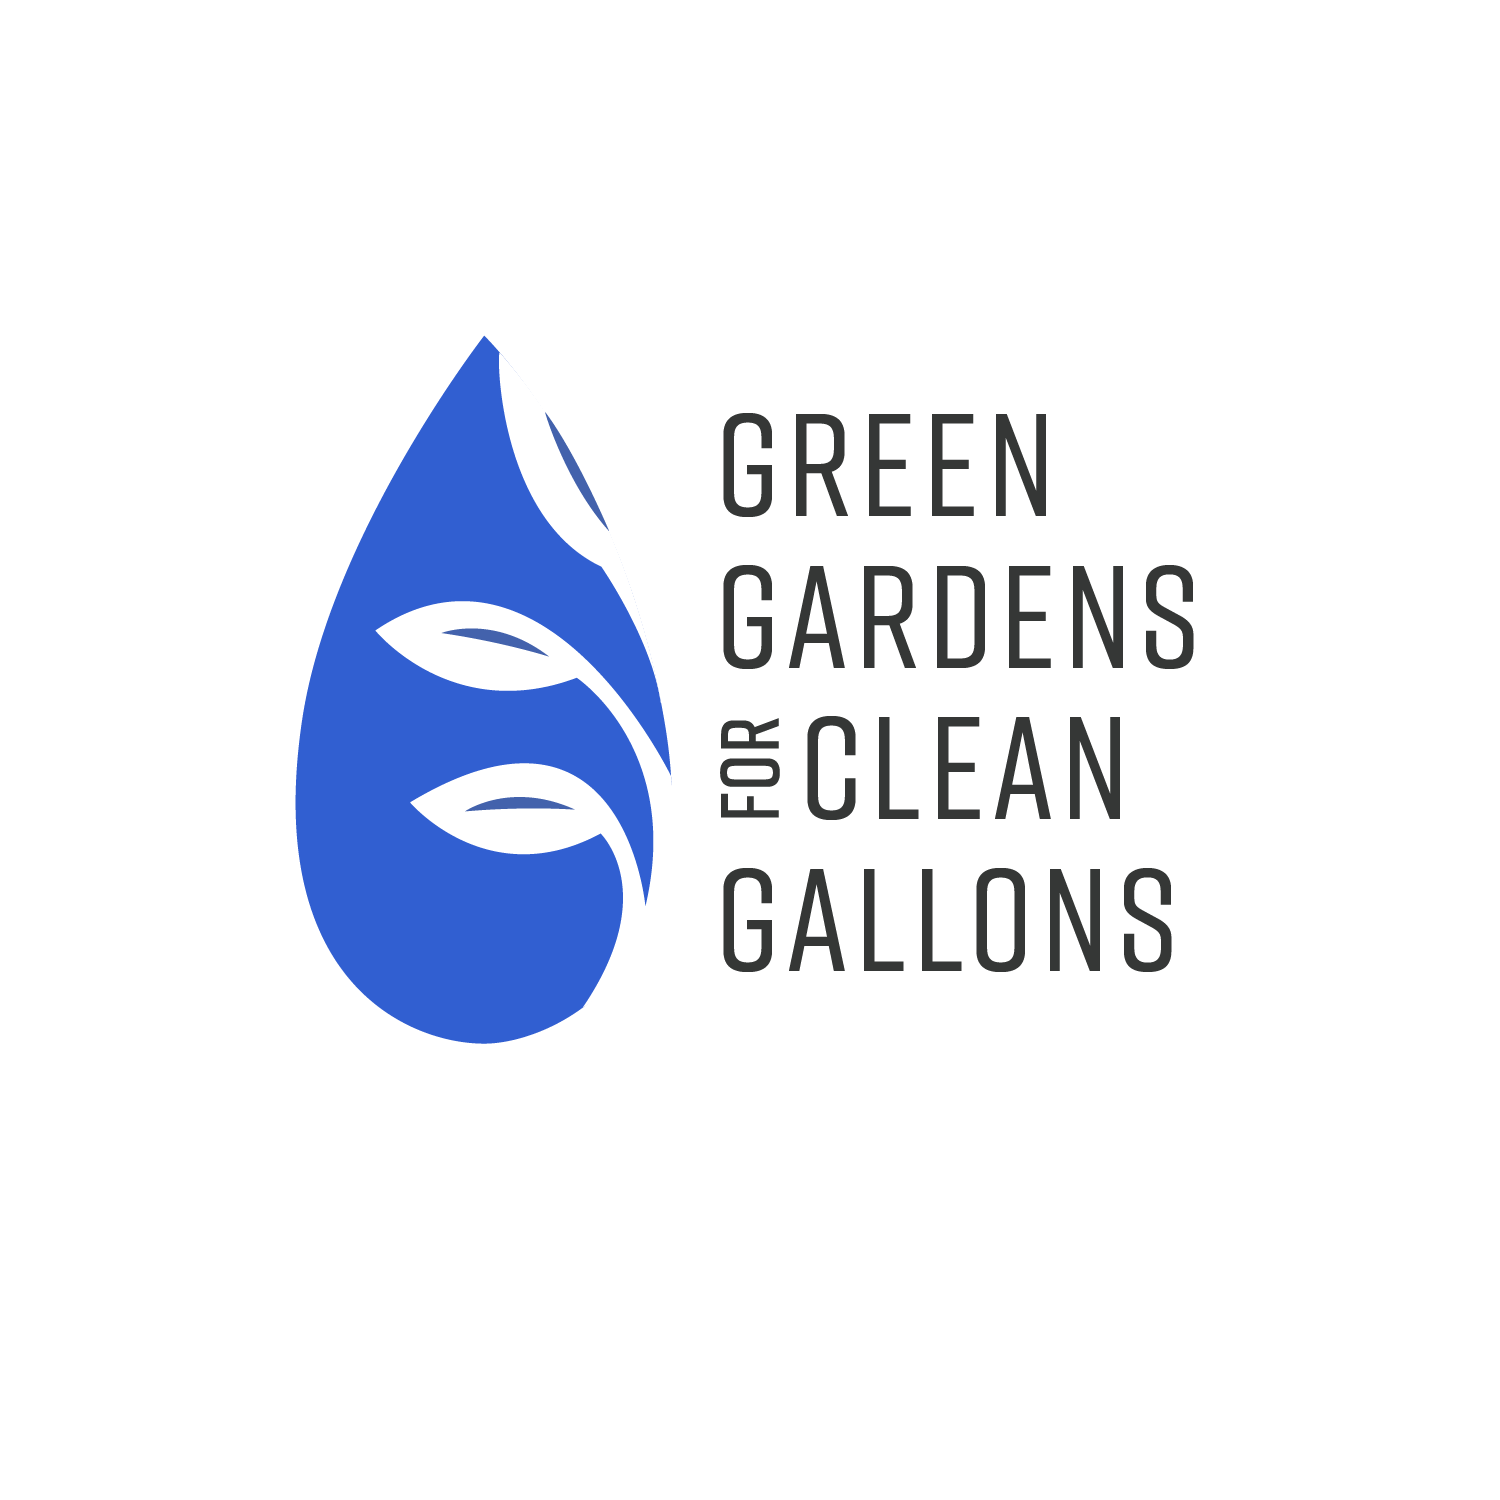 A capital campaign for rain gardens produced by the Nature Conservancy